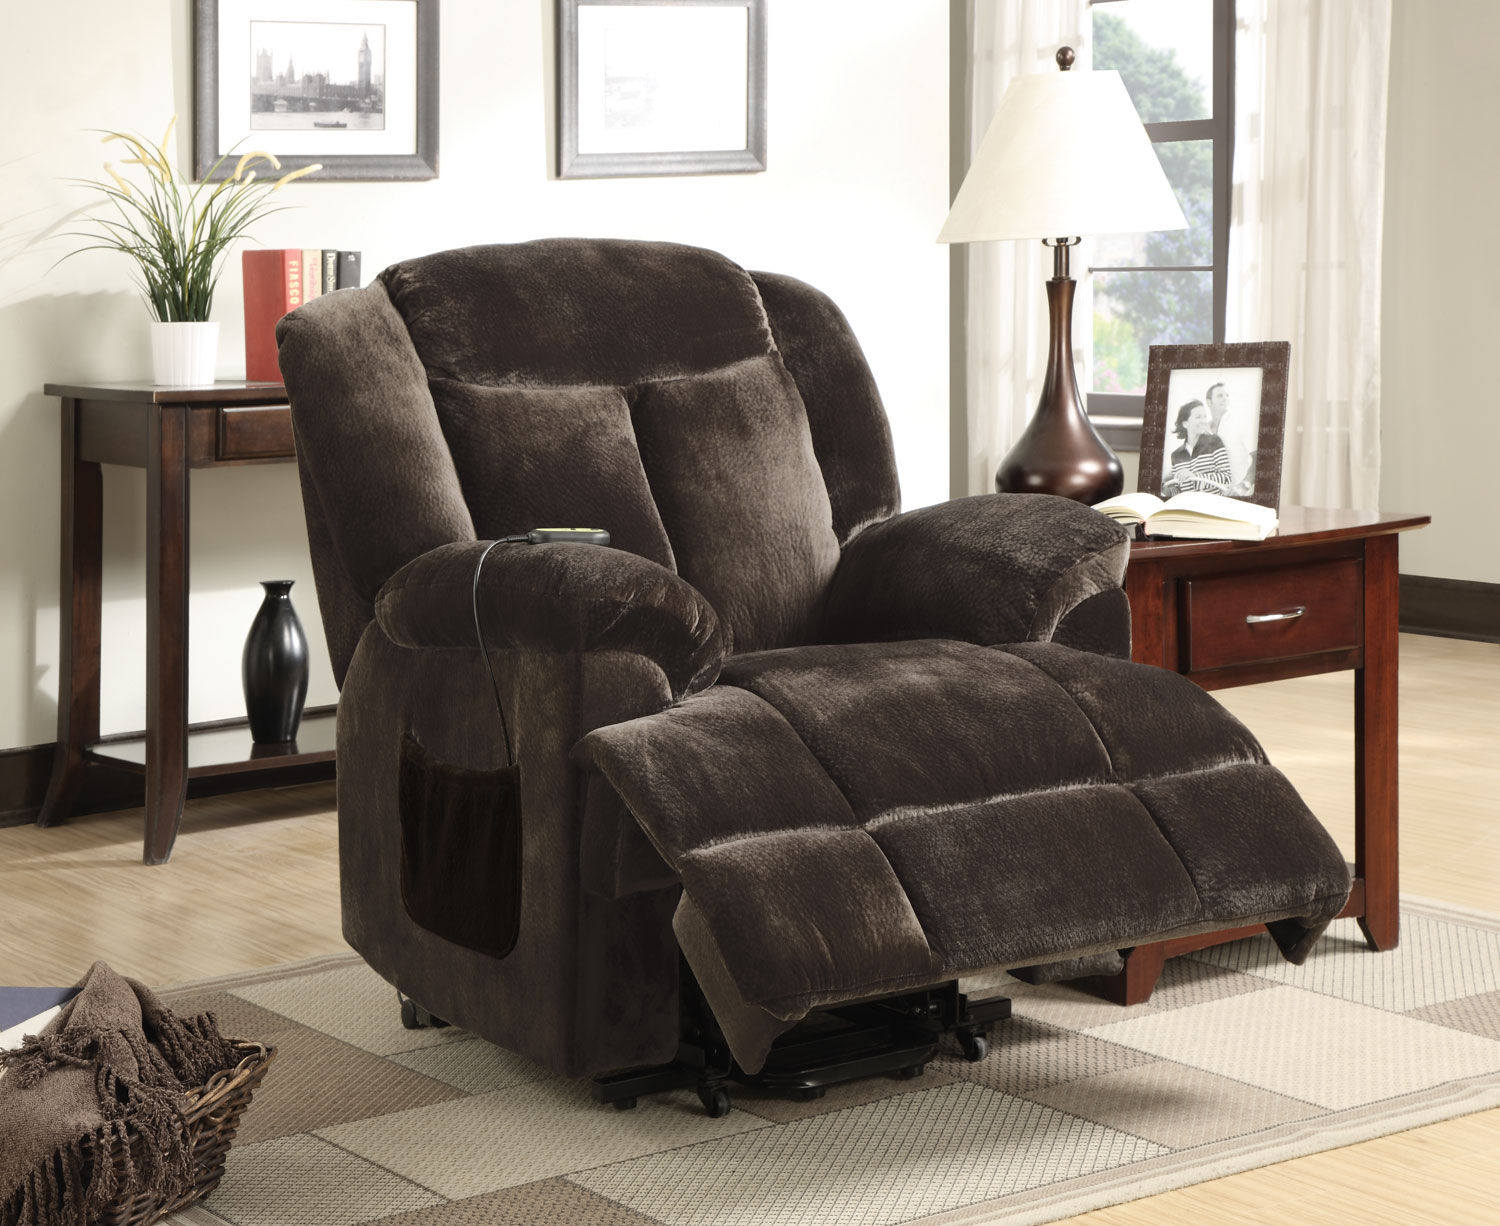 living room recliner. Coaster Living Room Power Lift Recliners 600173 in black on wooden floor  plus carpet and table Furniture Recommended For Your Healthcare